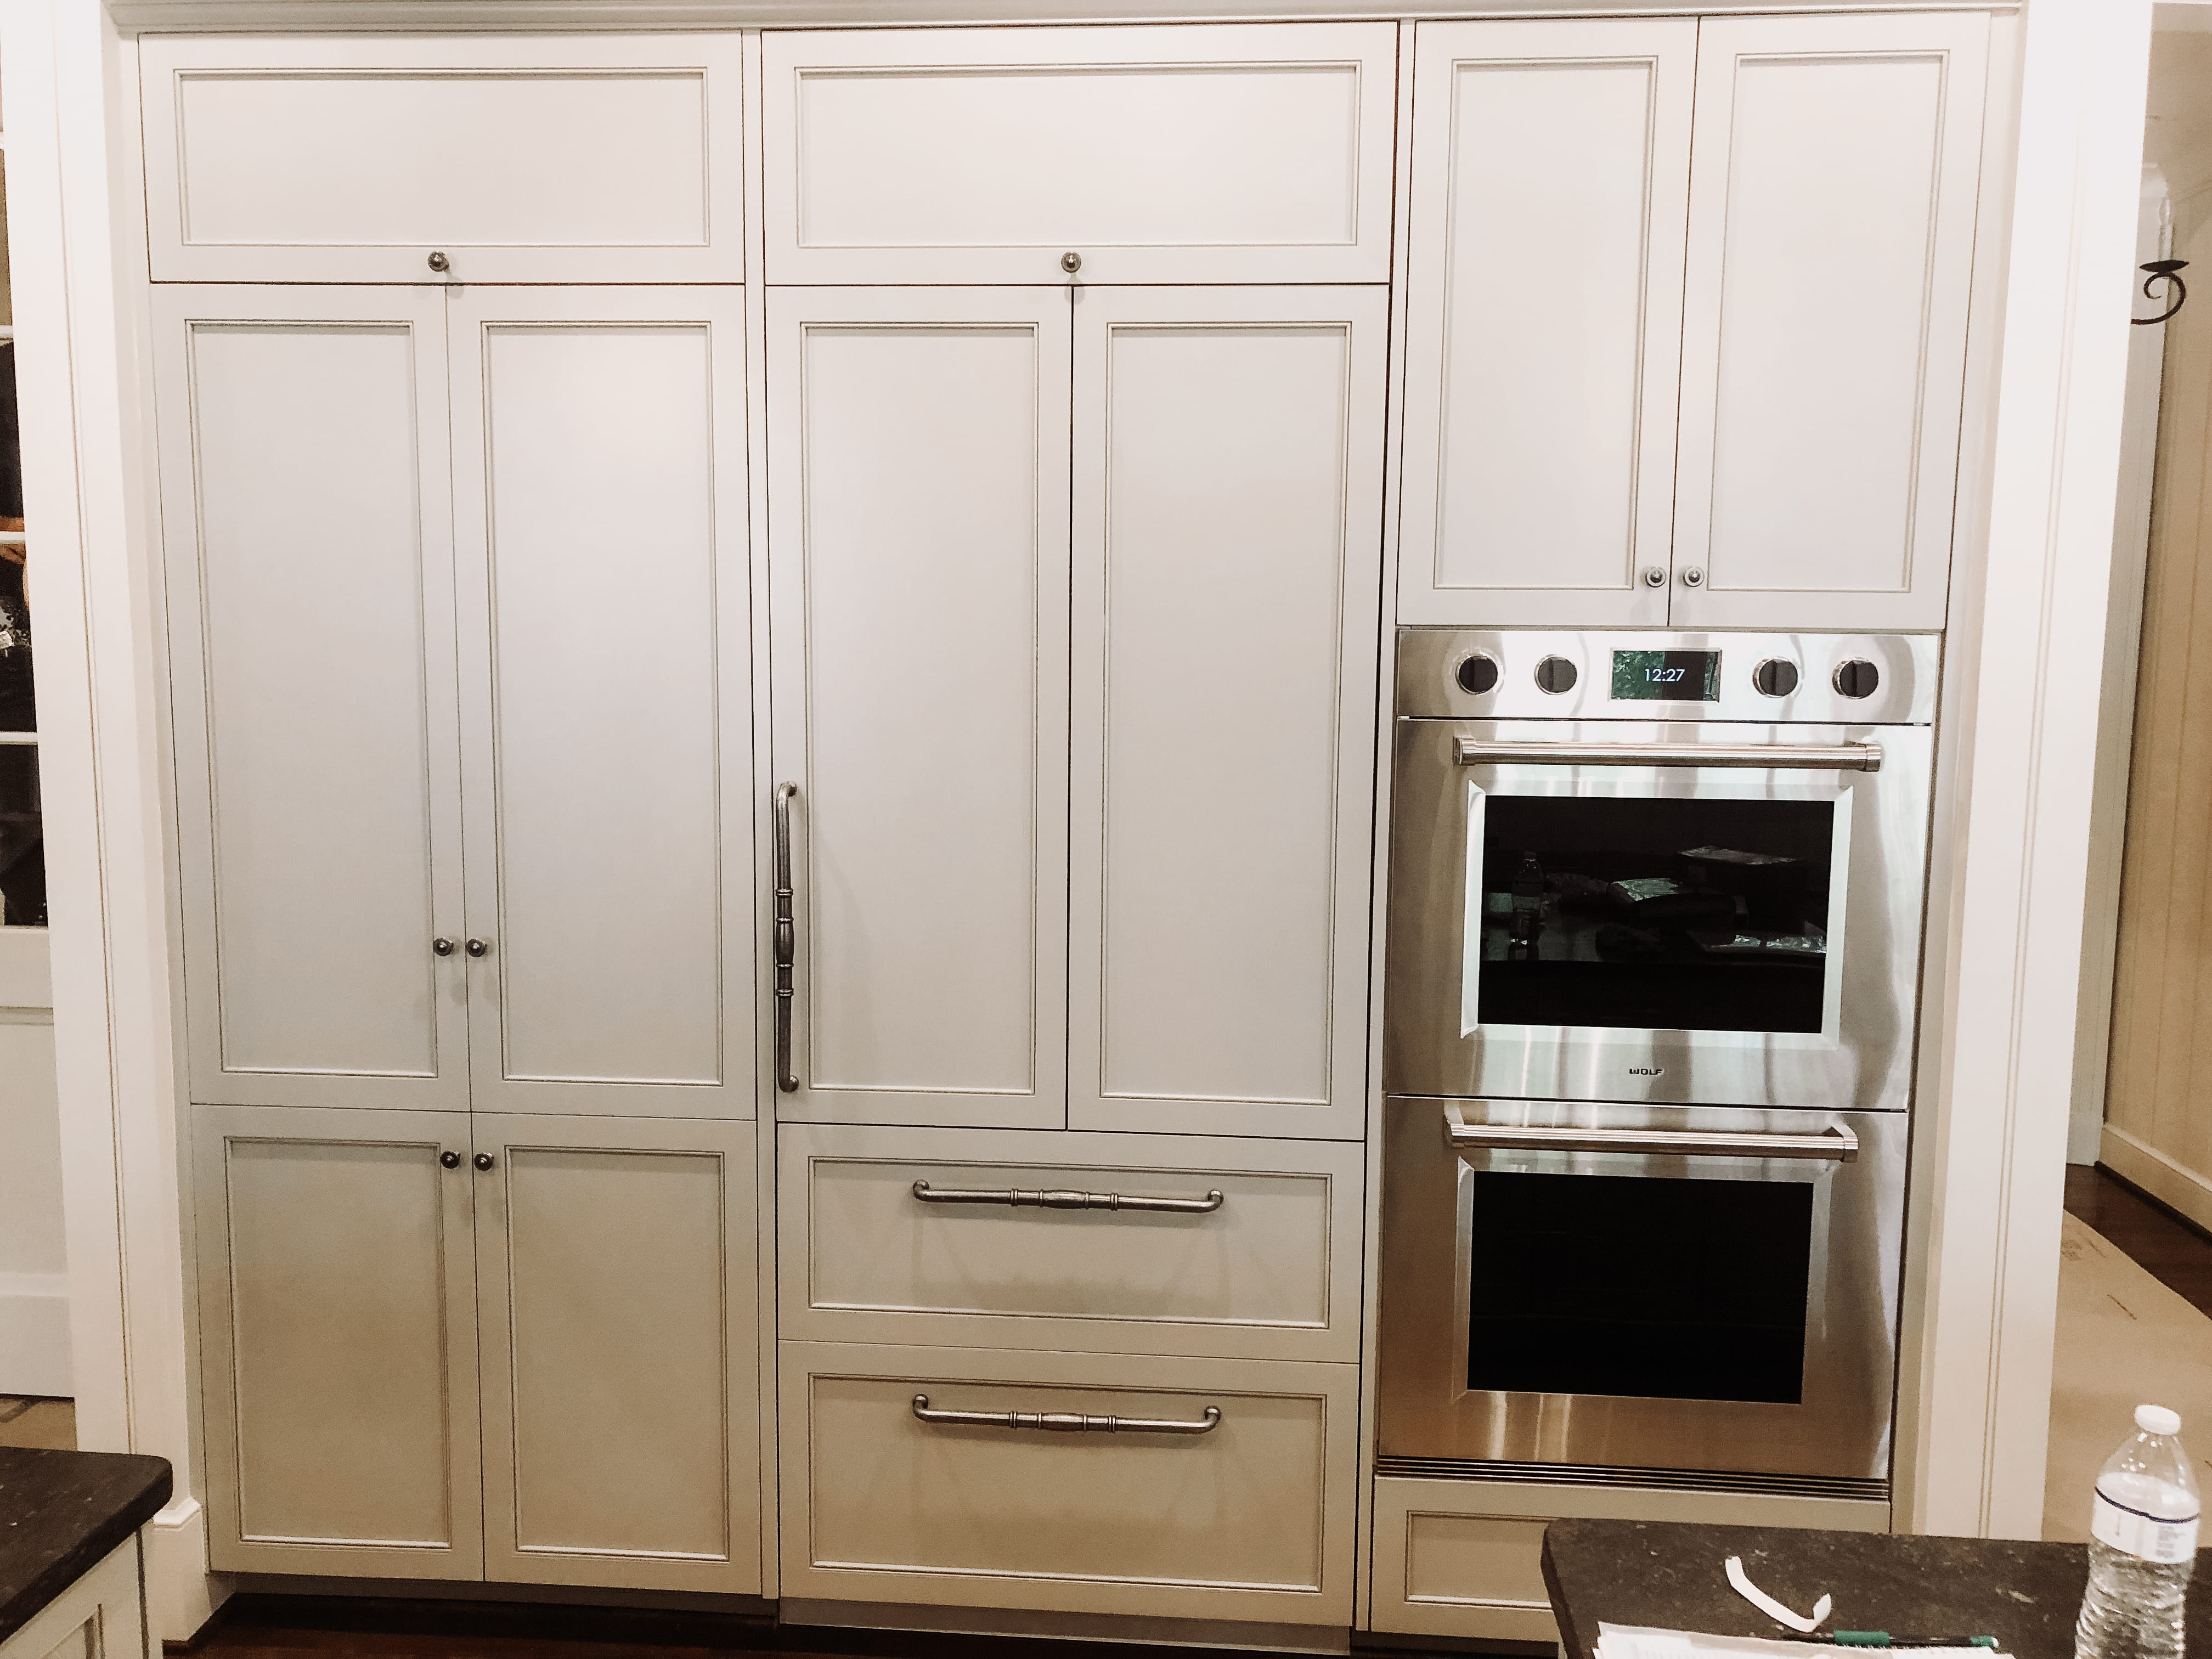 Traditional White Cabinets with Black Details and Stainless Steel Appliances